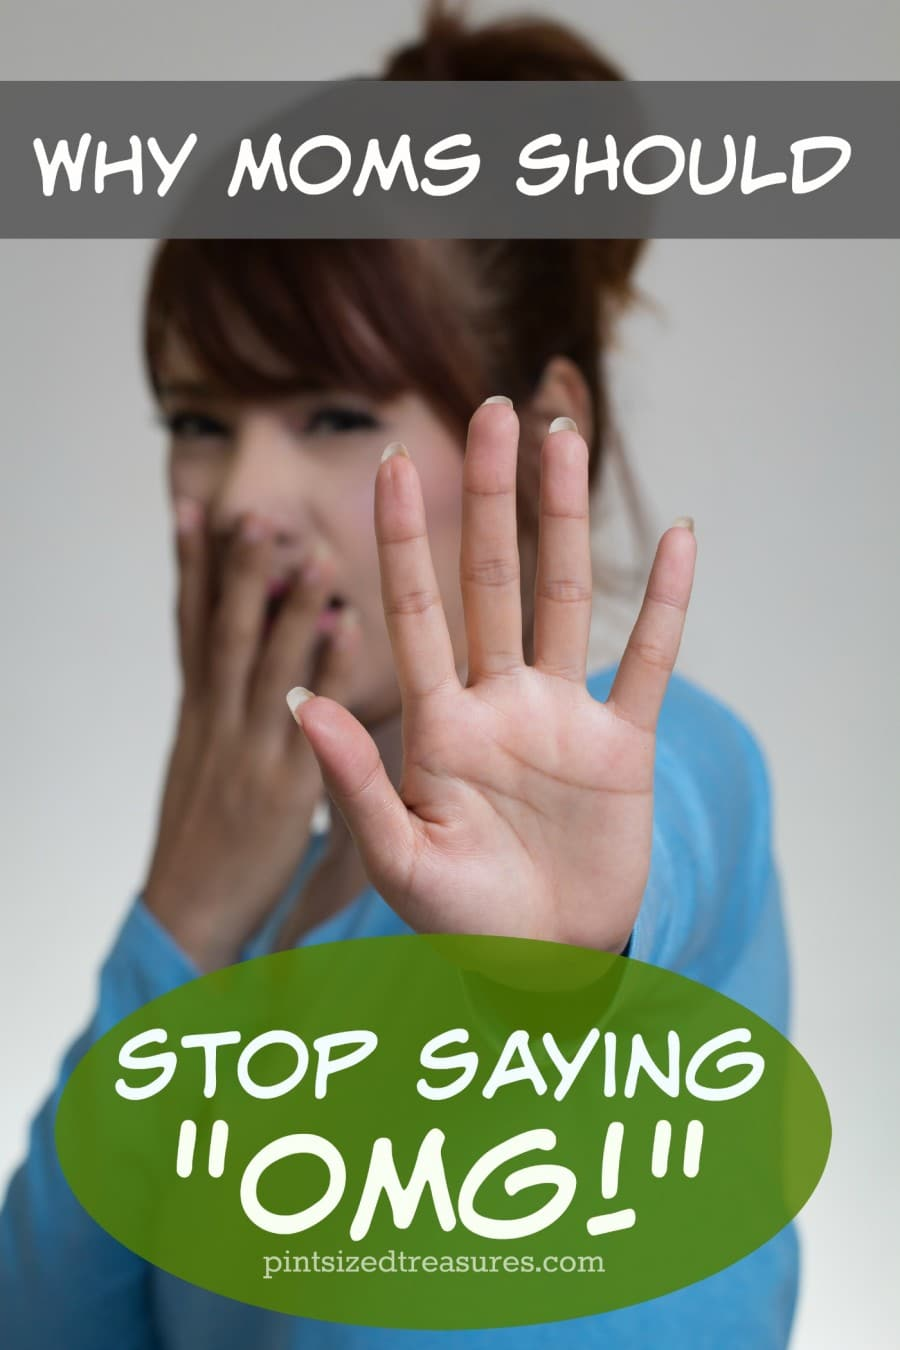 why moms should stop saying OMG